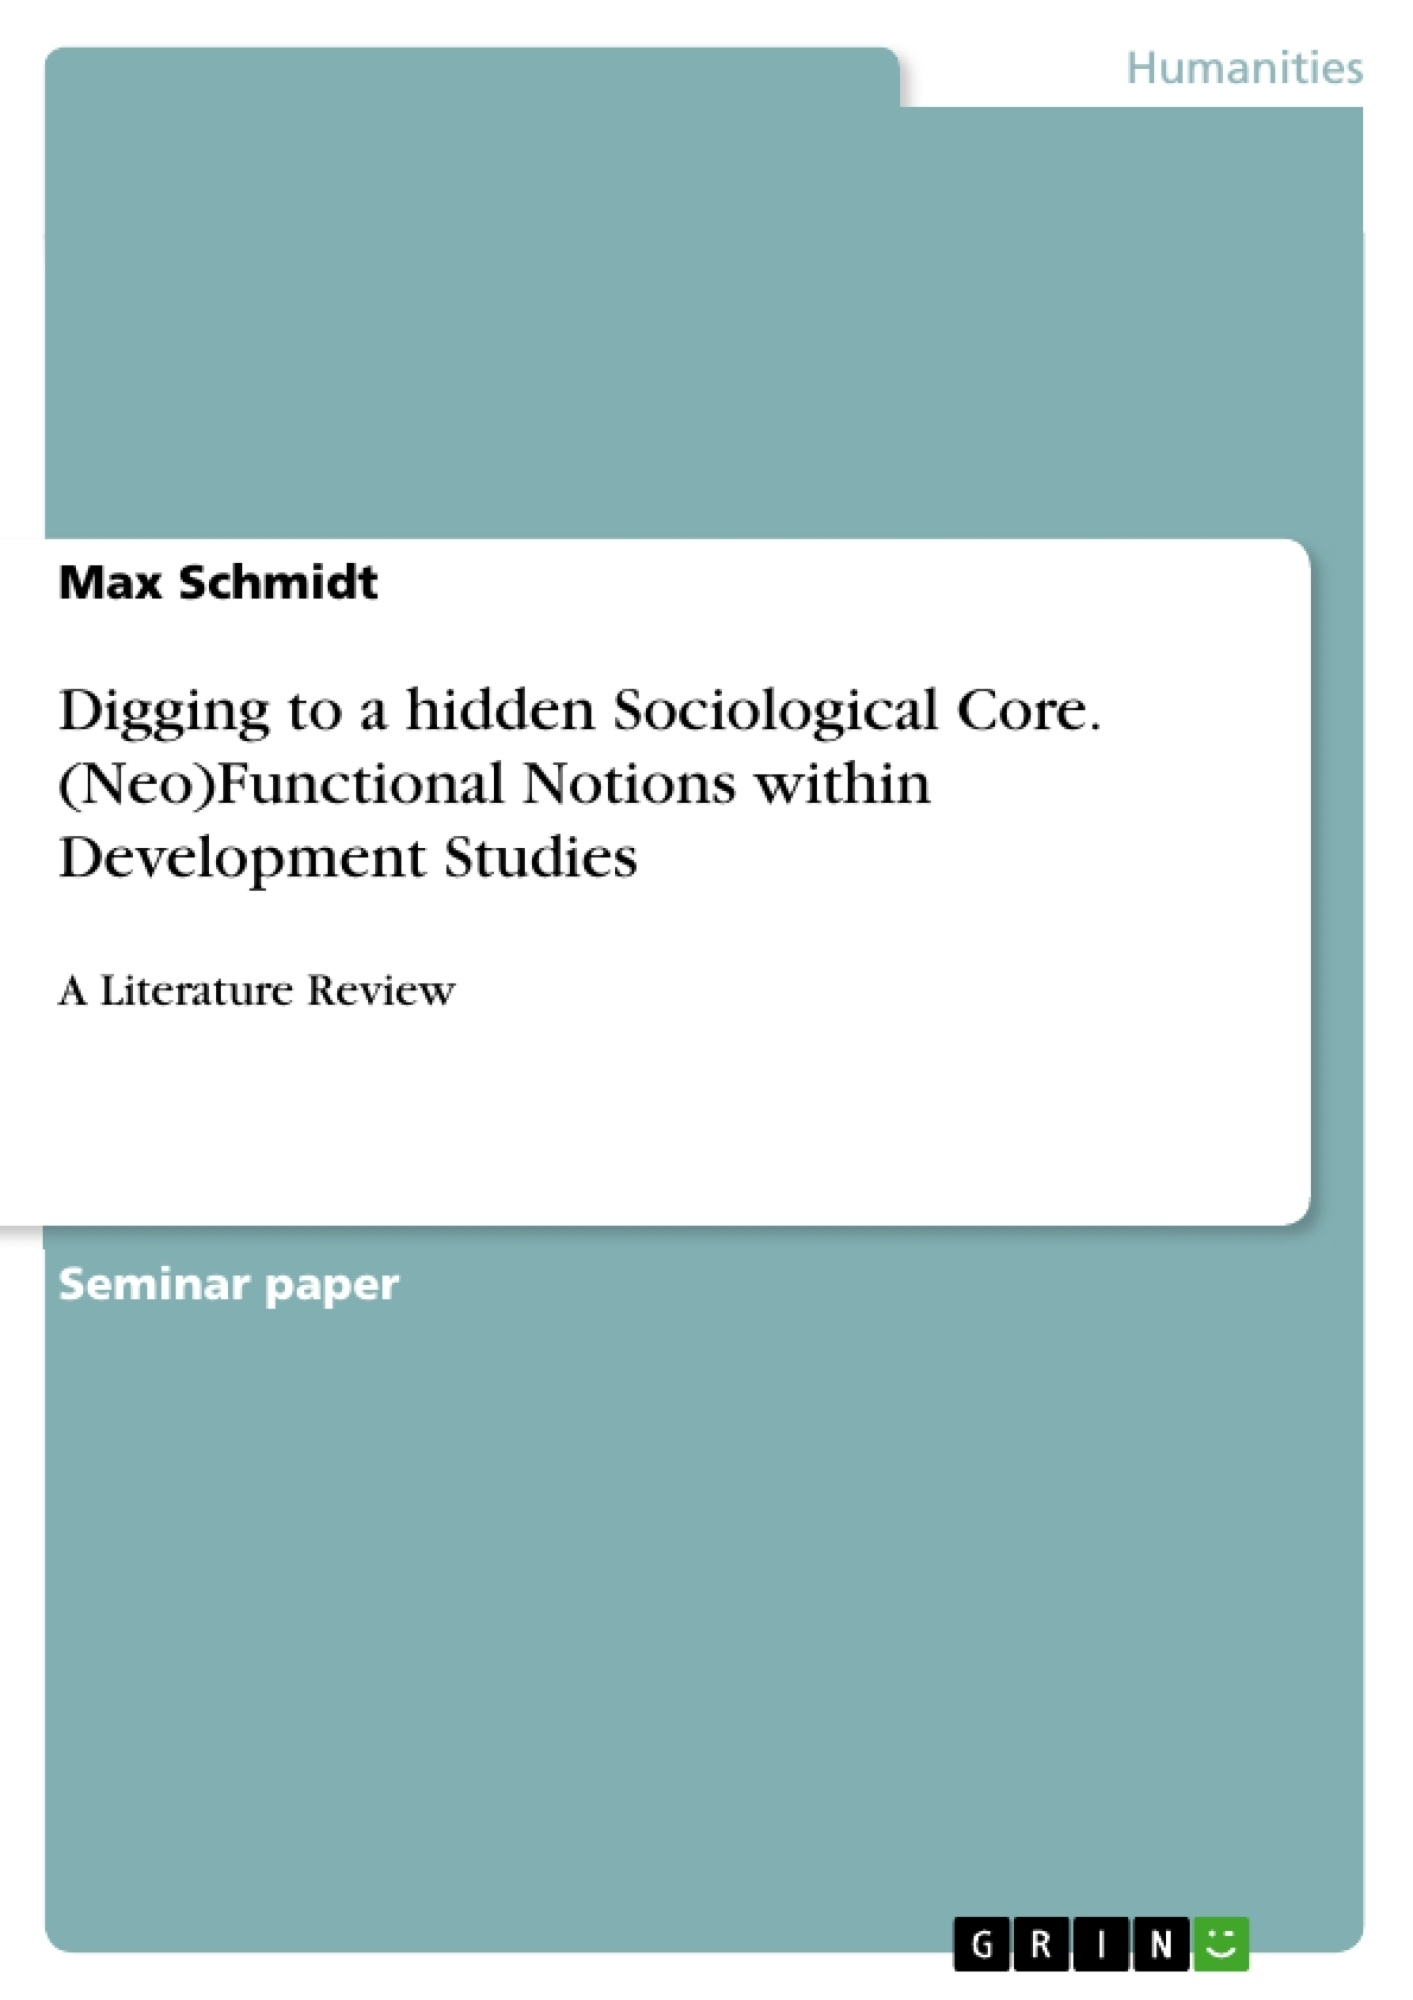 Title: Digging to a hidden Sociological Core. (Neo)Functional Notions within Development Studies